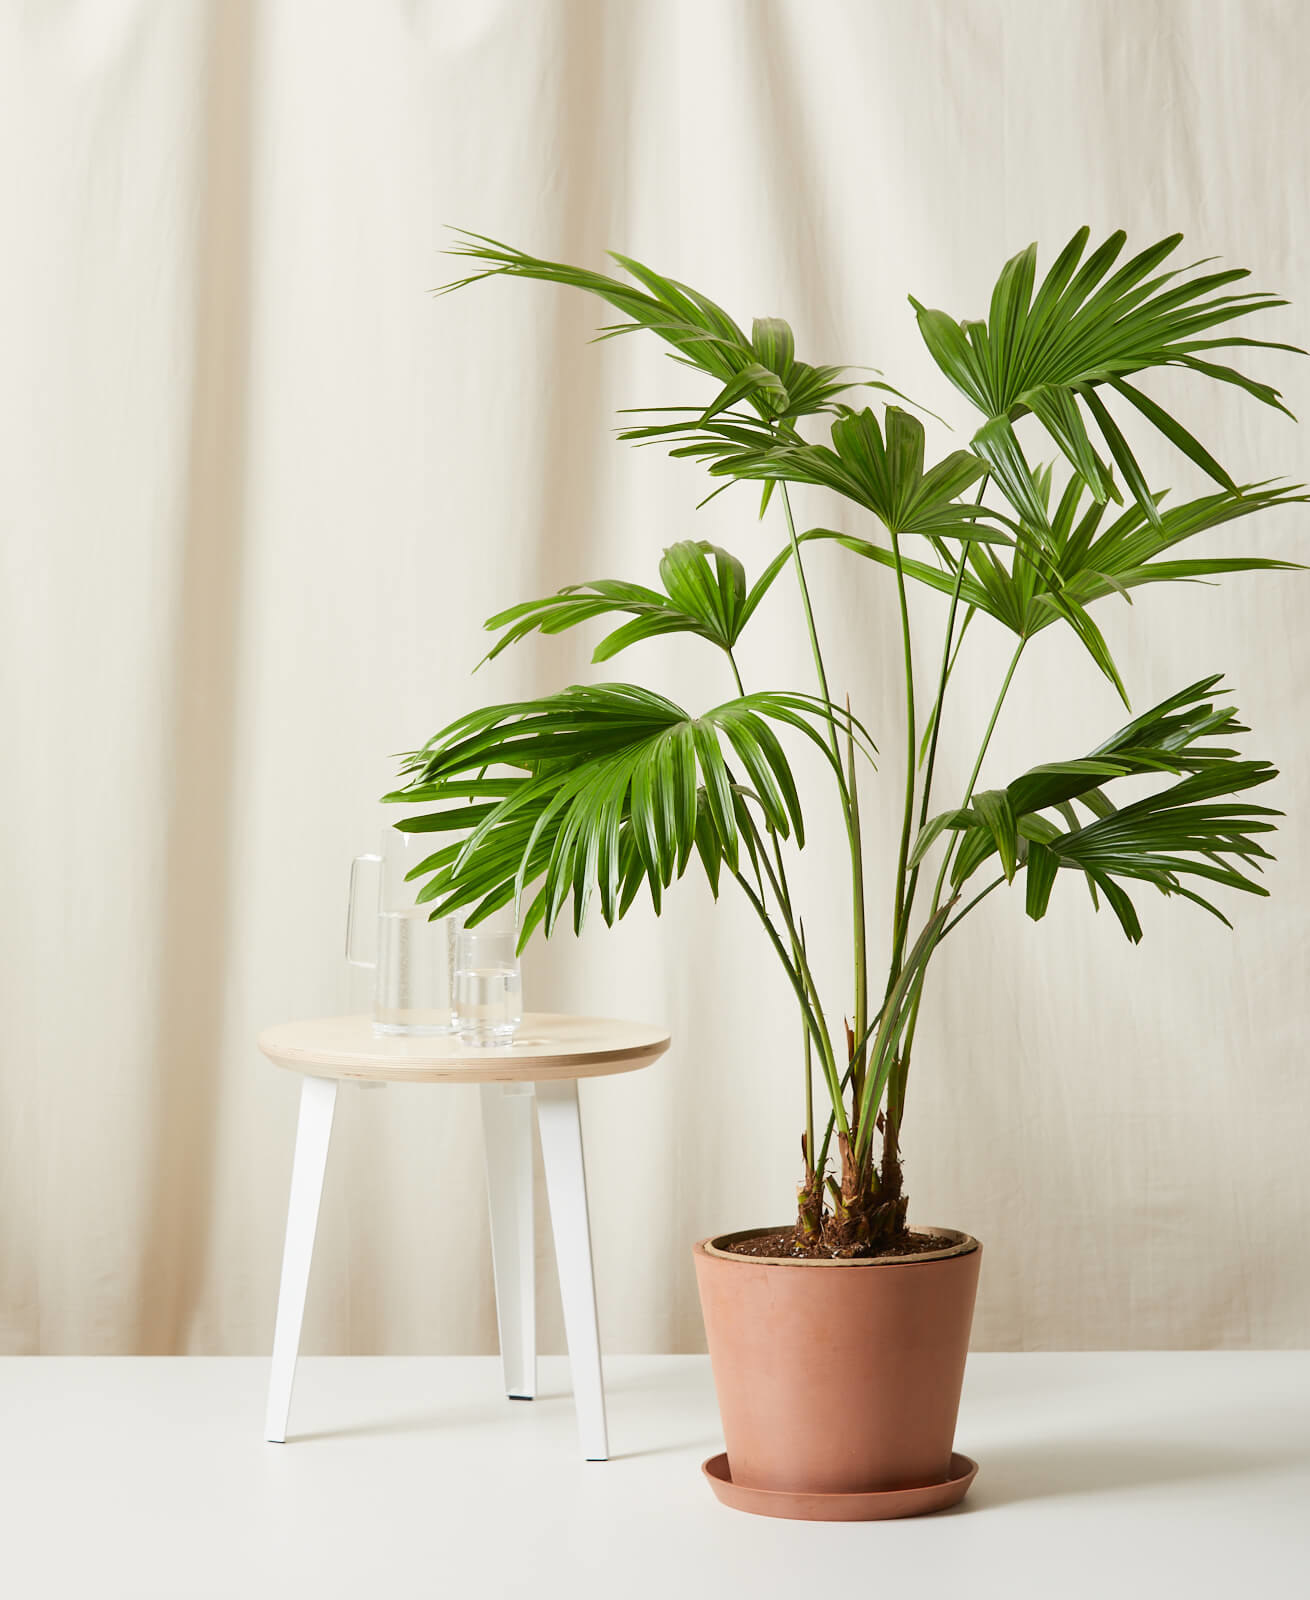 The Chinese fan palm in a clay pot